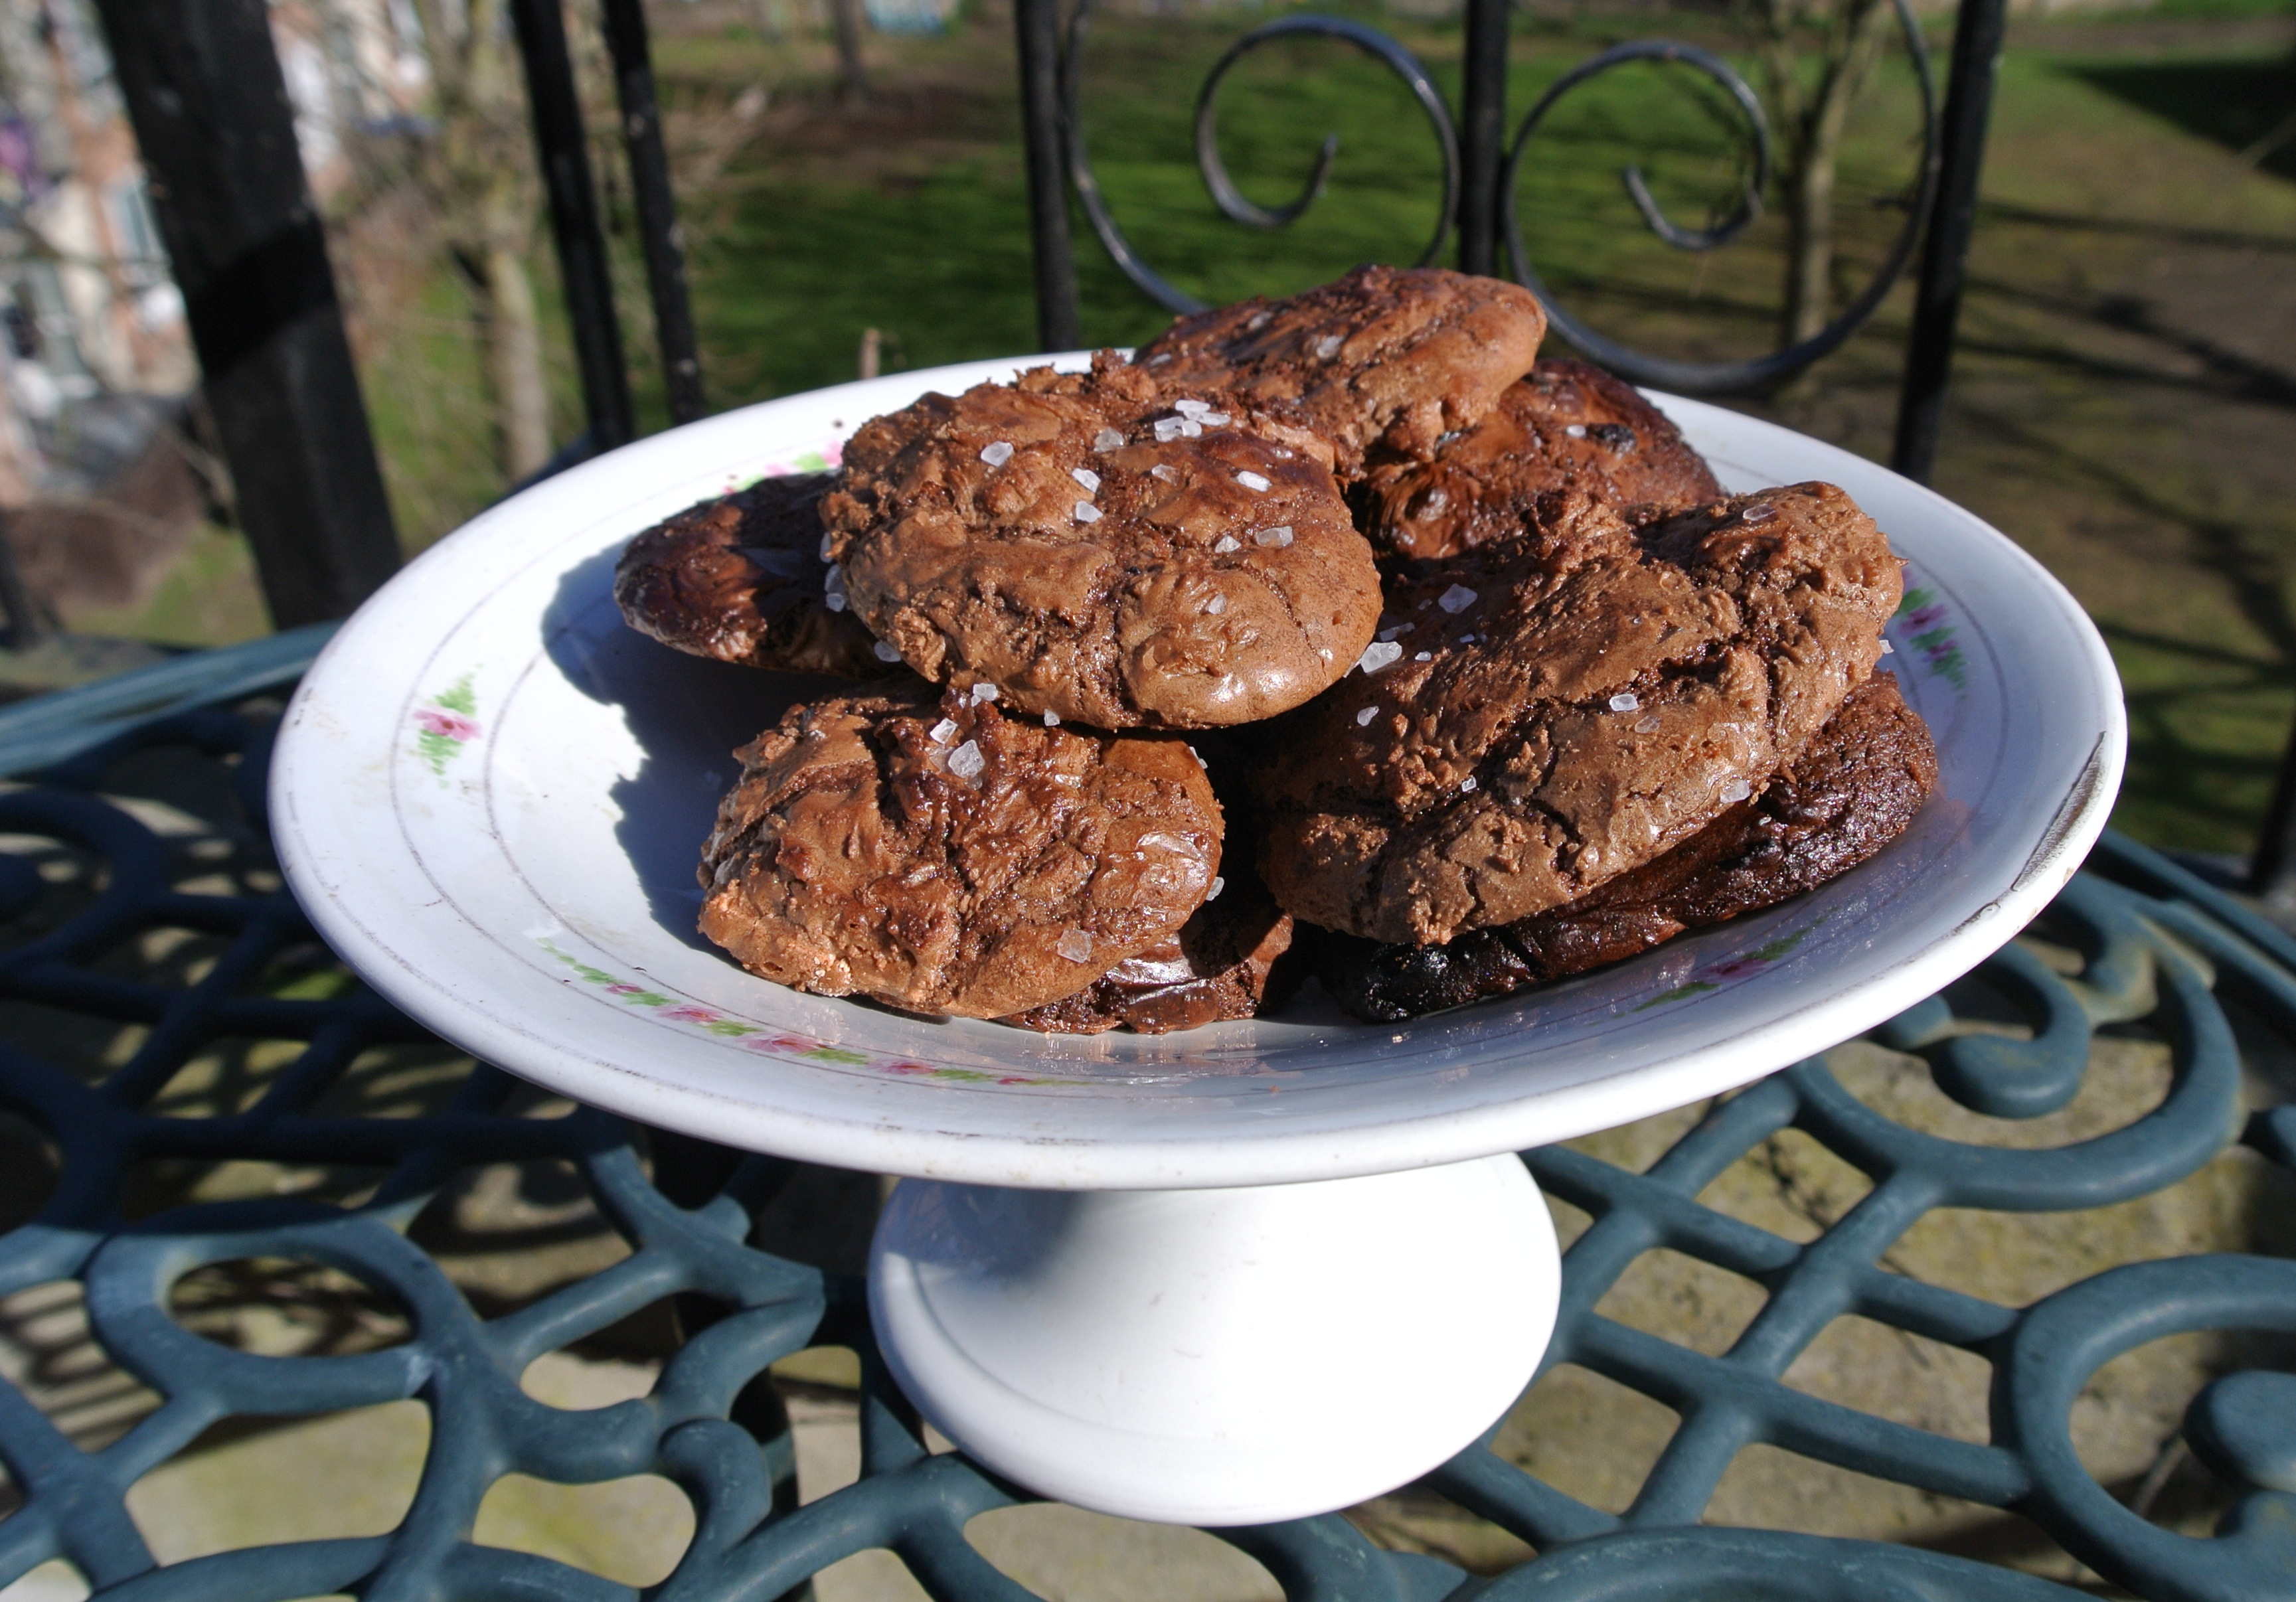 Chocolate cookies on white dish